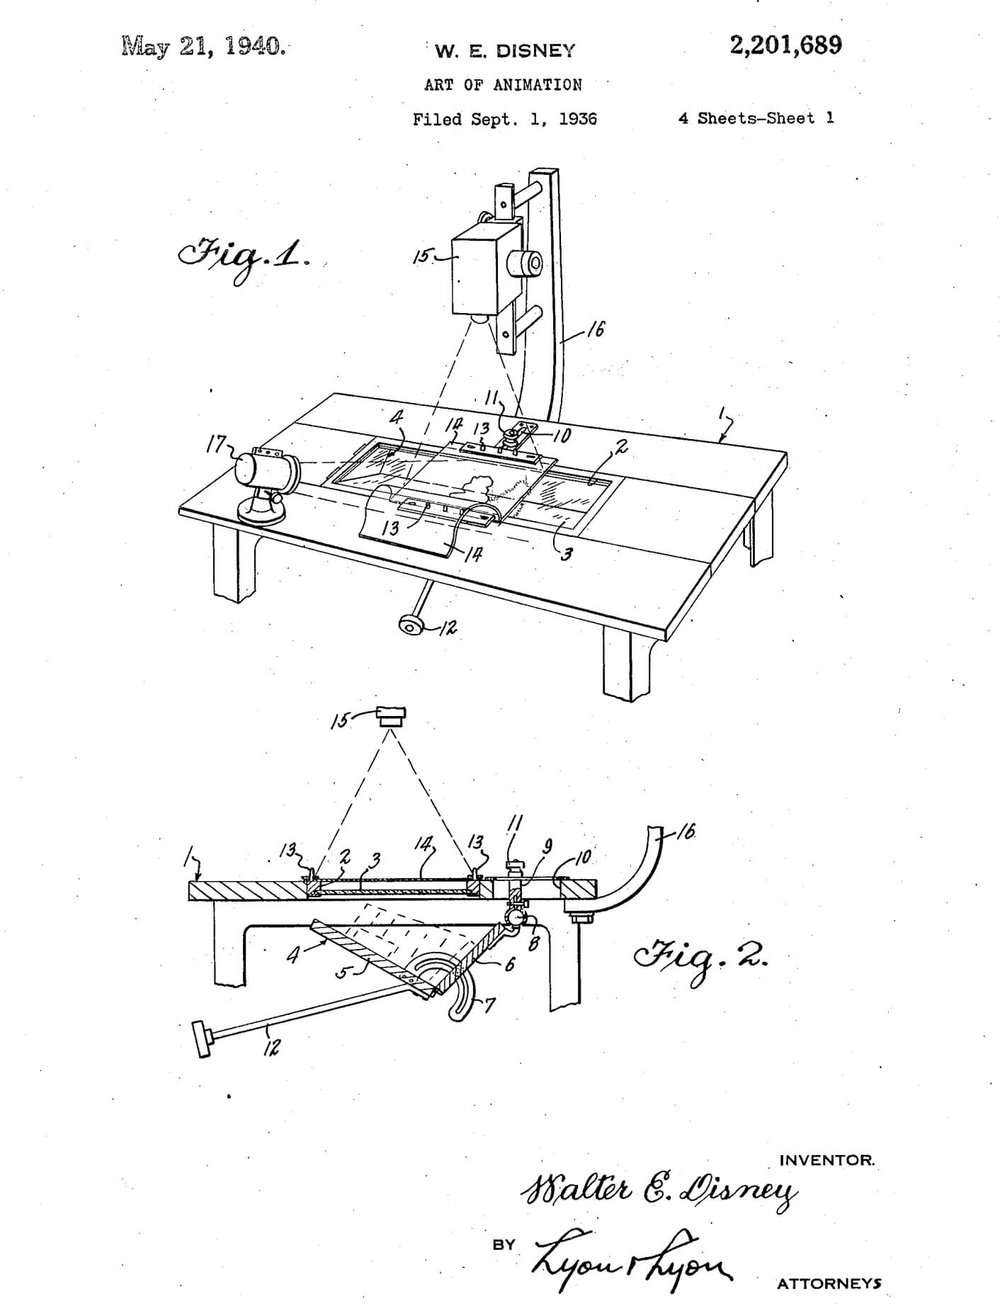 The Original Patent for the Multiplane Camera - Photo Credit: Disney